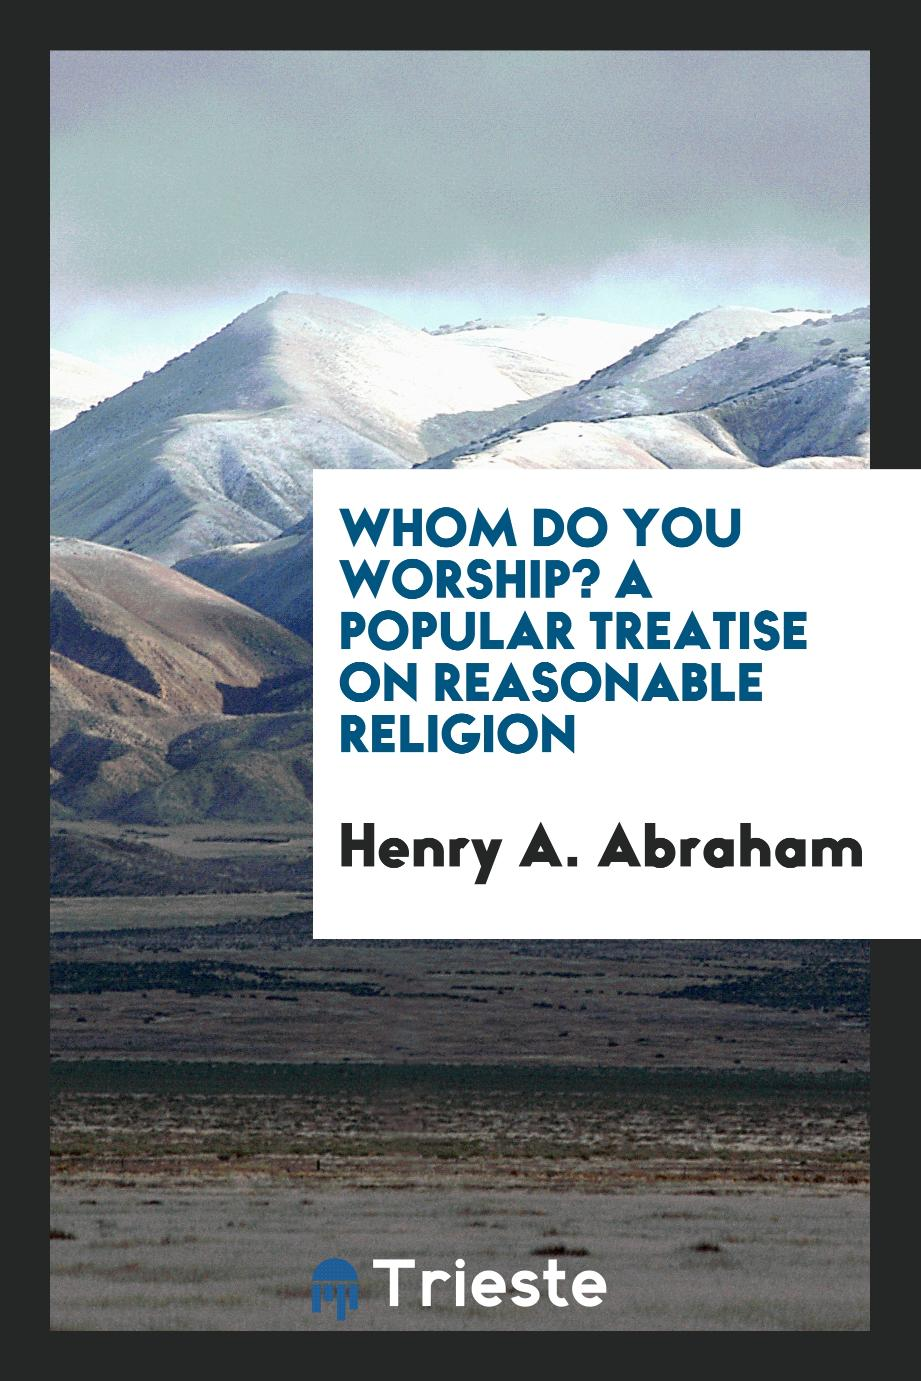 Whom Do You Worship? A Popular Treatise on Reasonable Religion